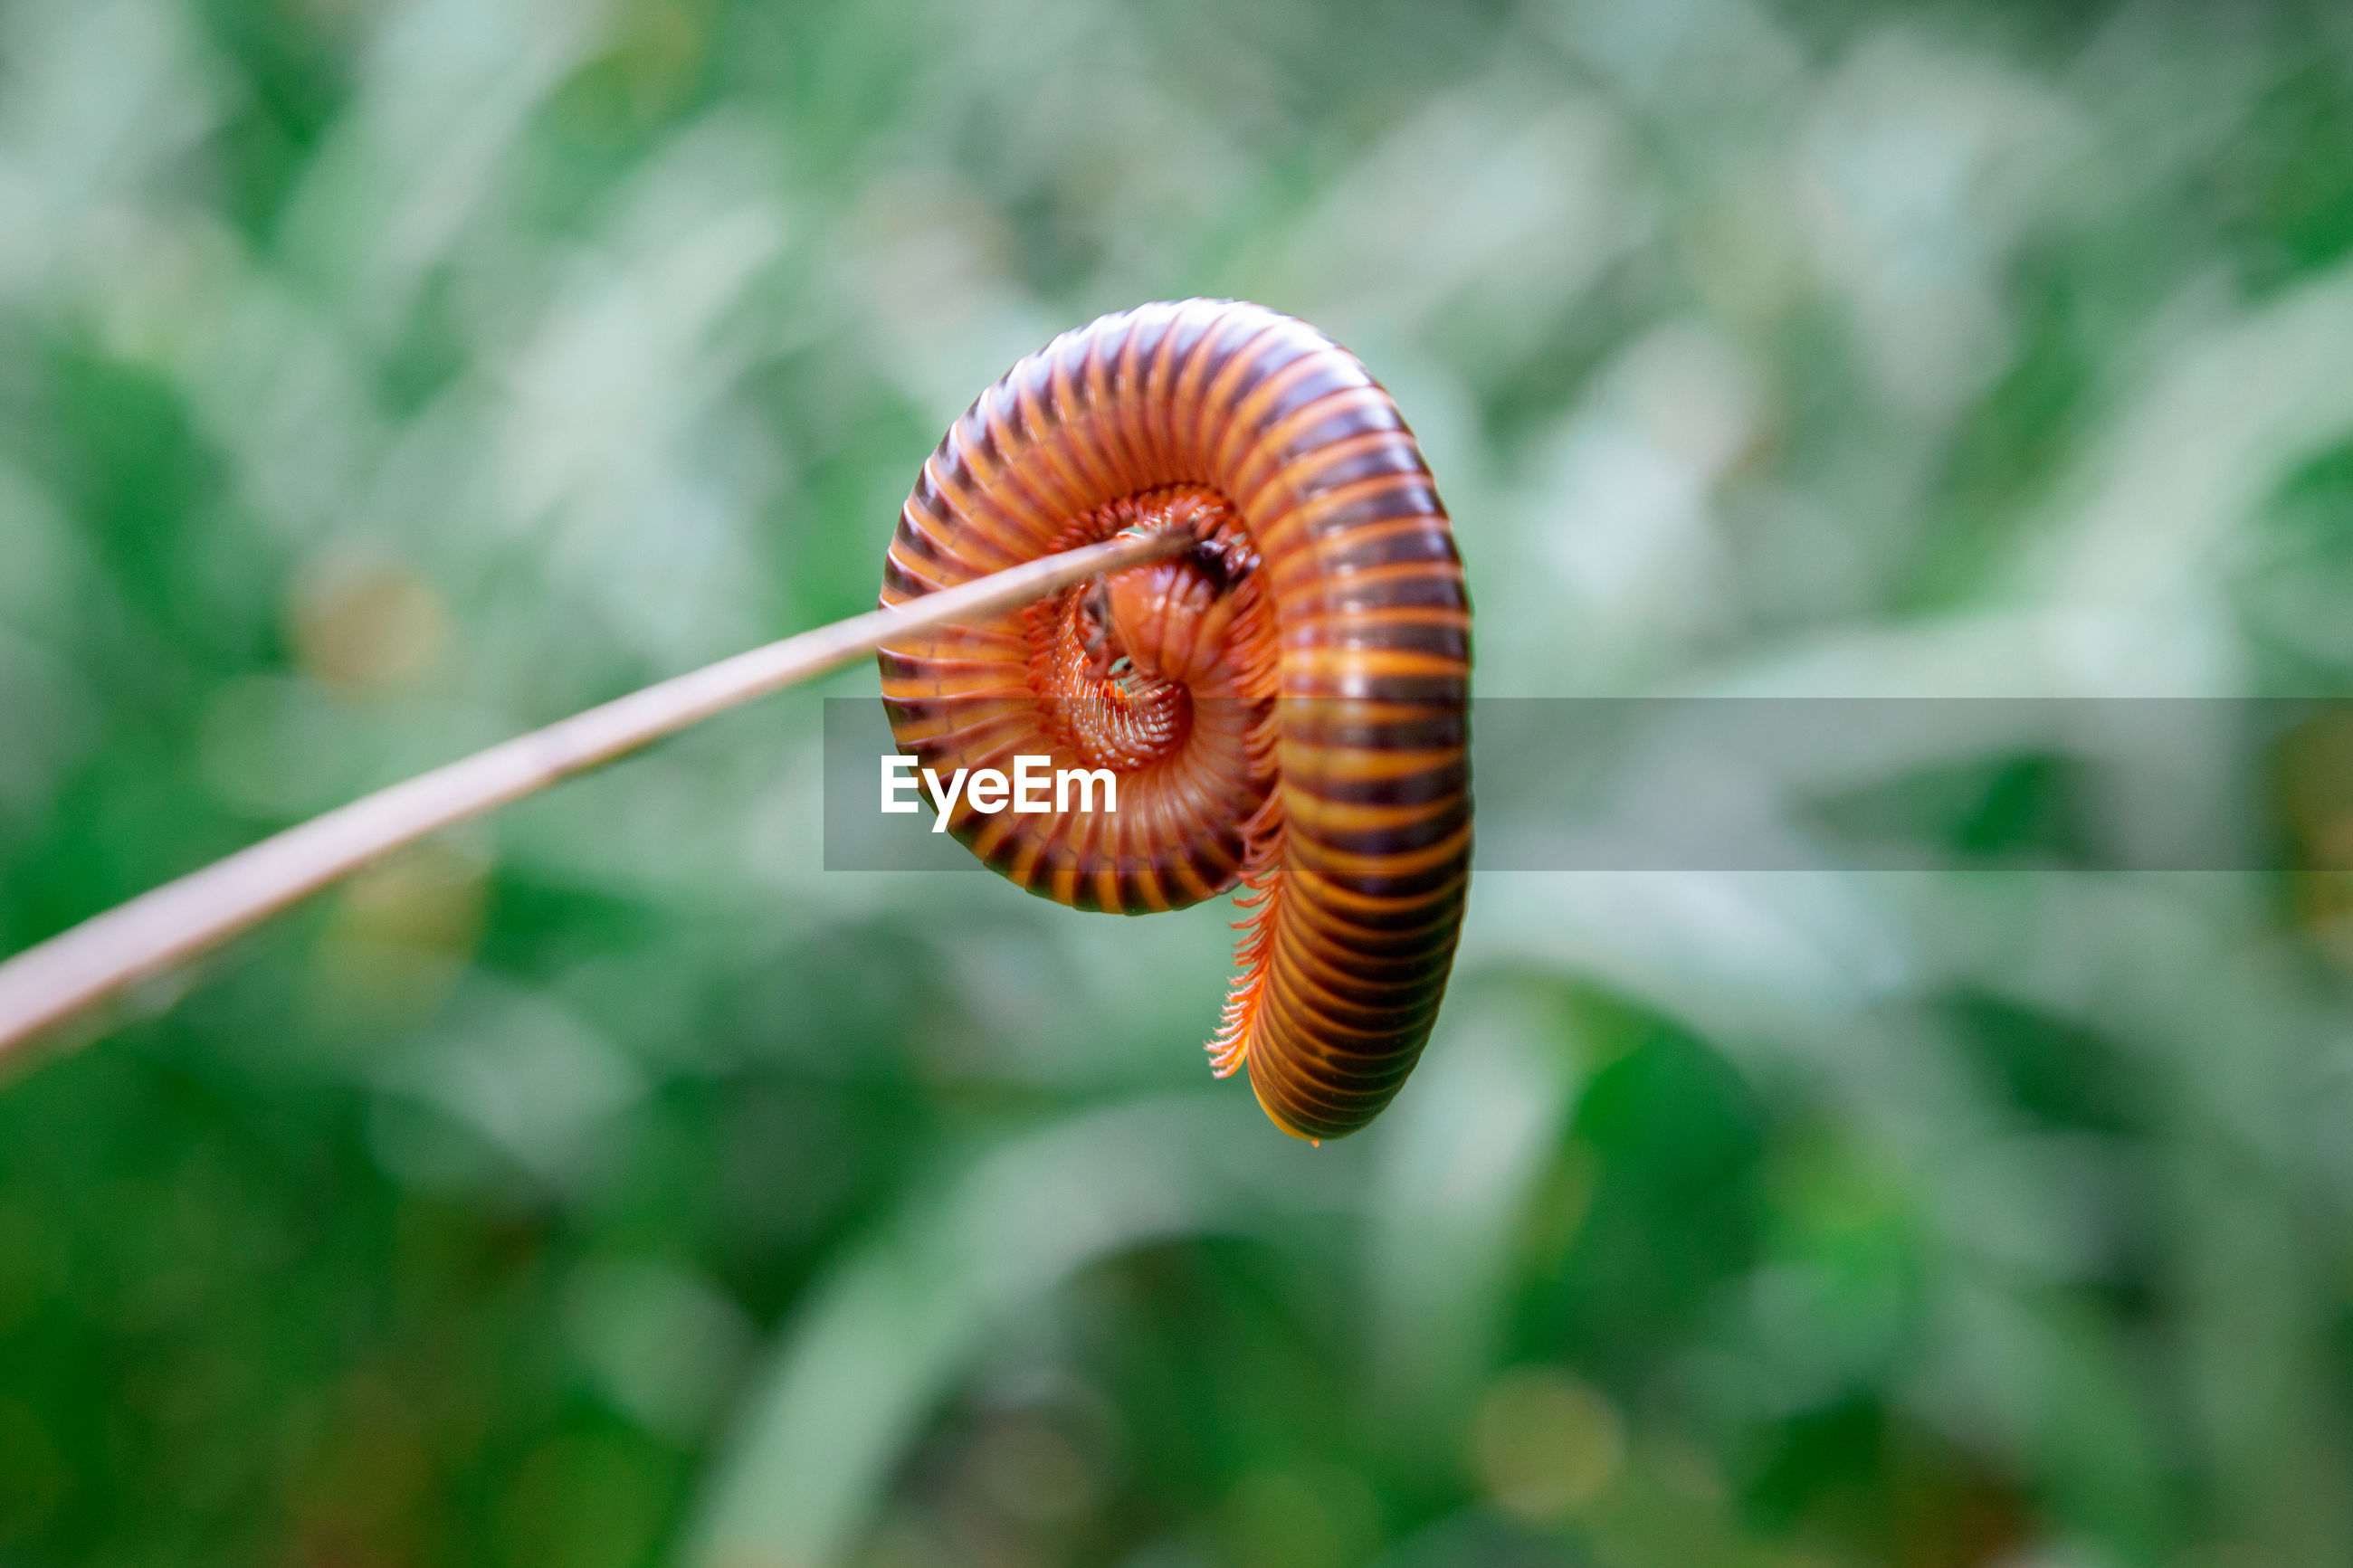 Close-up millipede rolling on wood srick and green leaf background